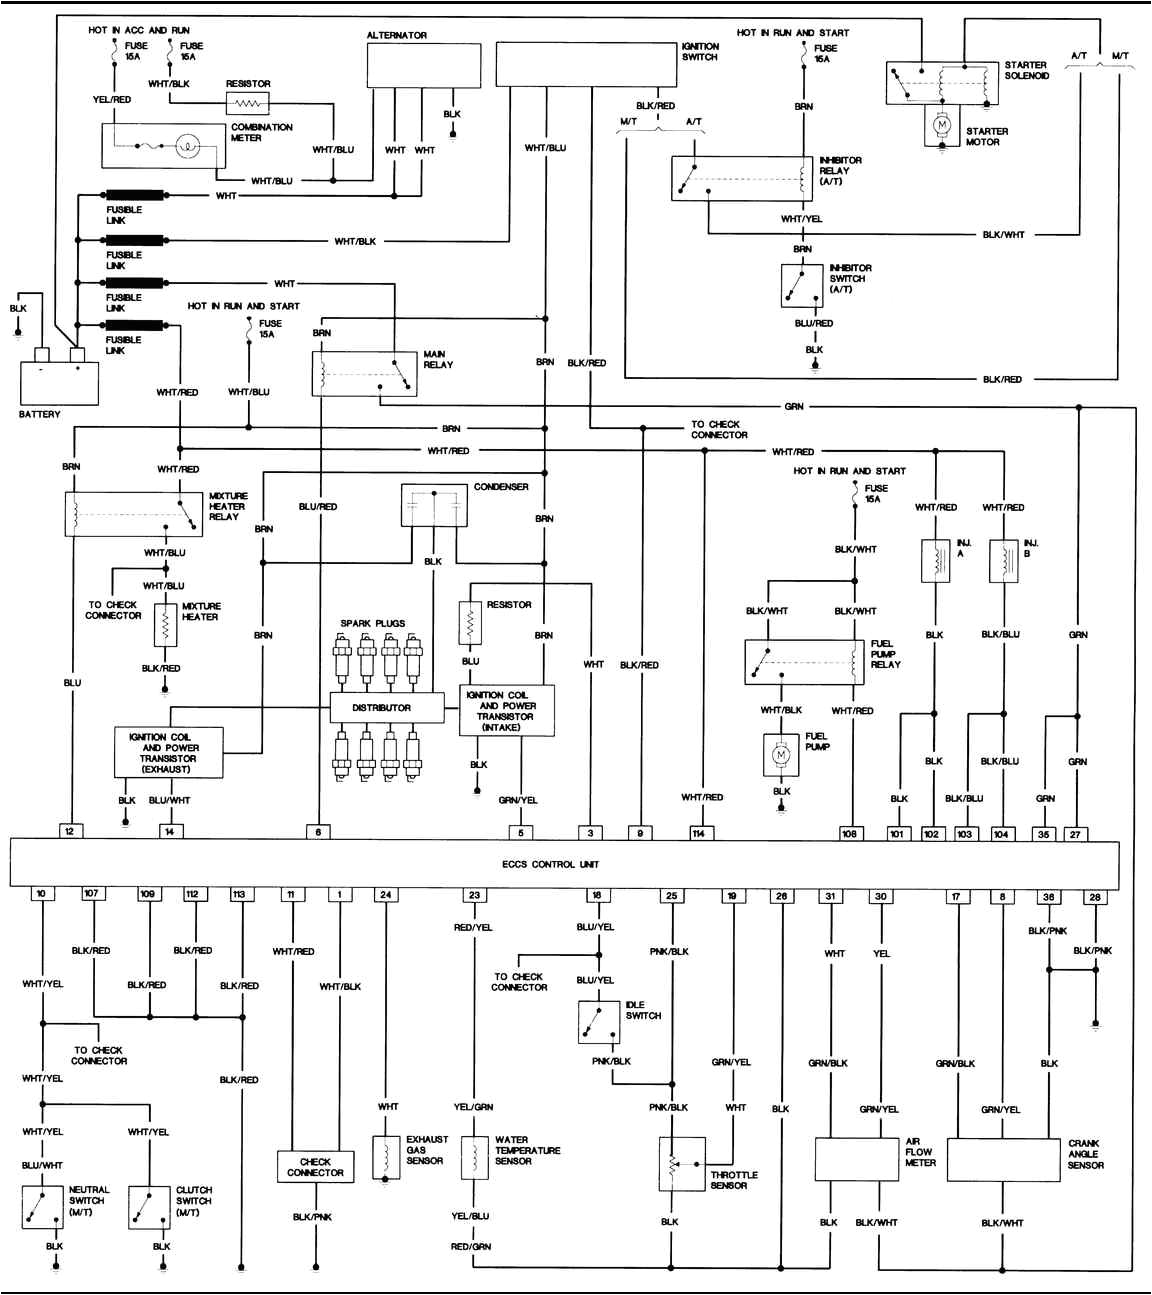 nissan car radio stereo audio wiring diagram autoradio connector in 1996 nissan maxima on 1996 nissan maxima wiring diagram jpg